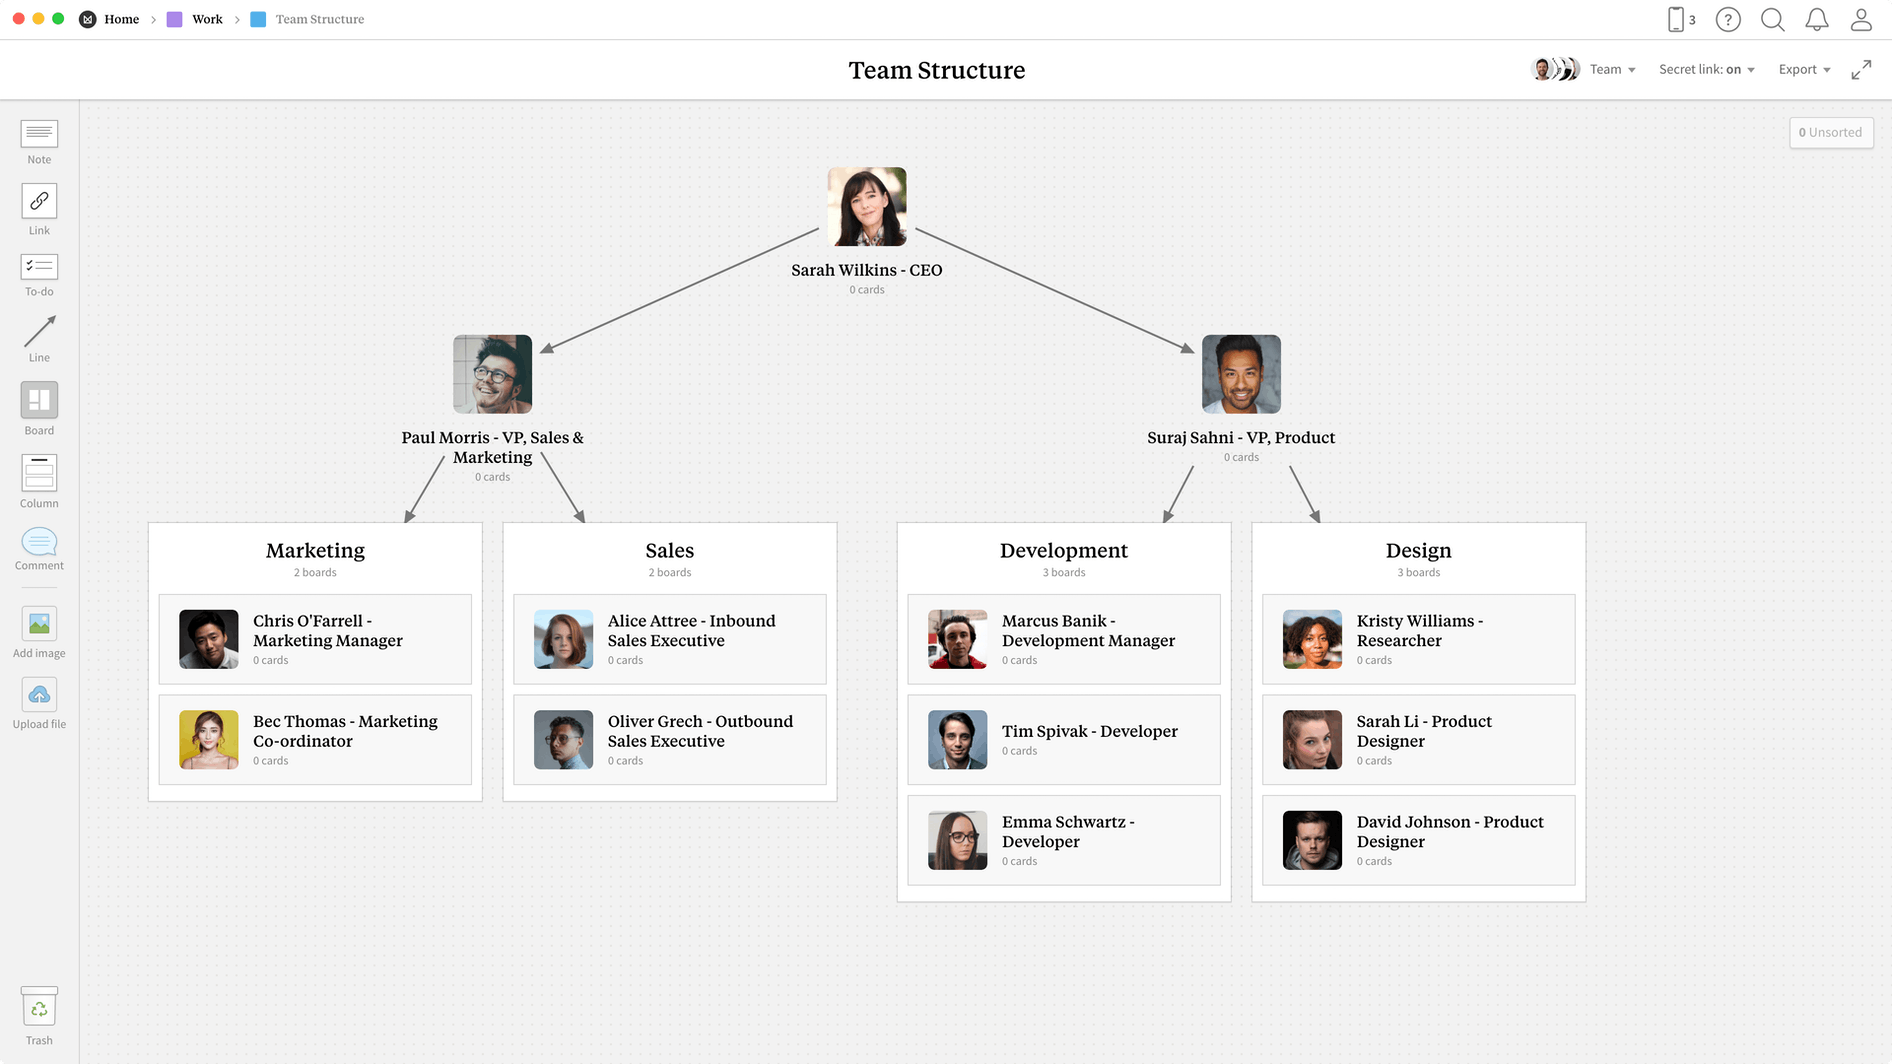 Team Structure Template, within the Milanote app